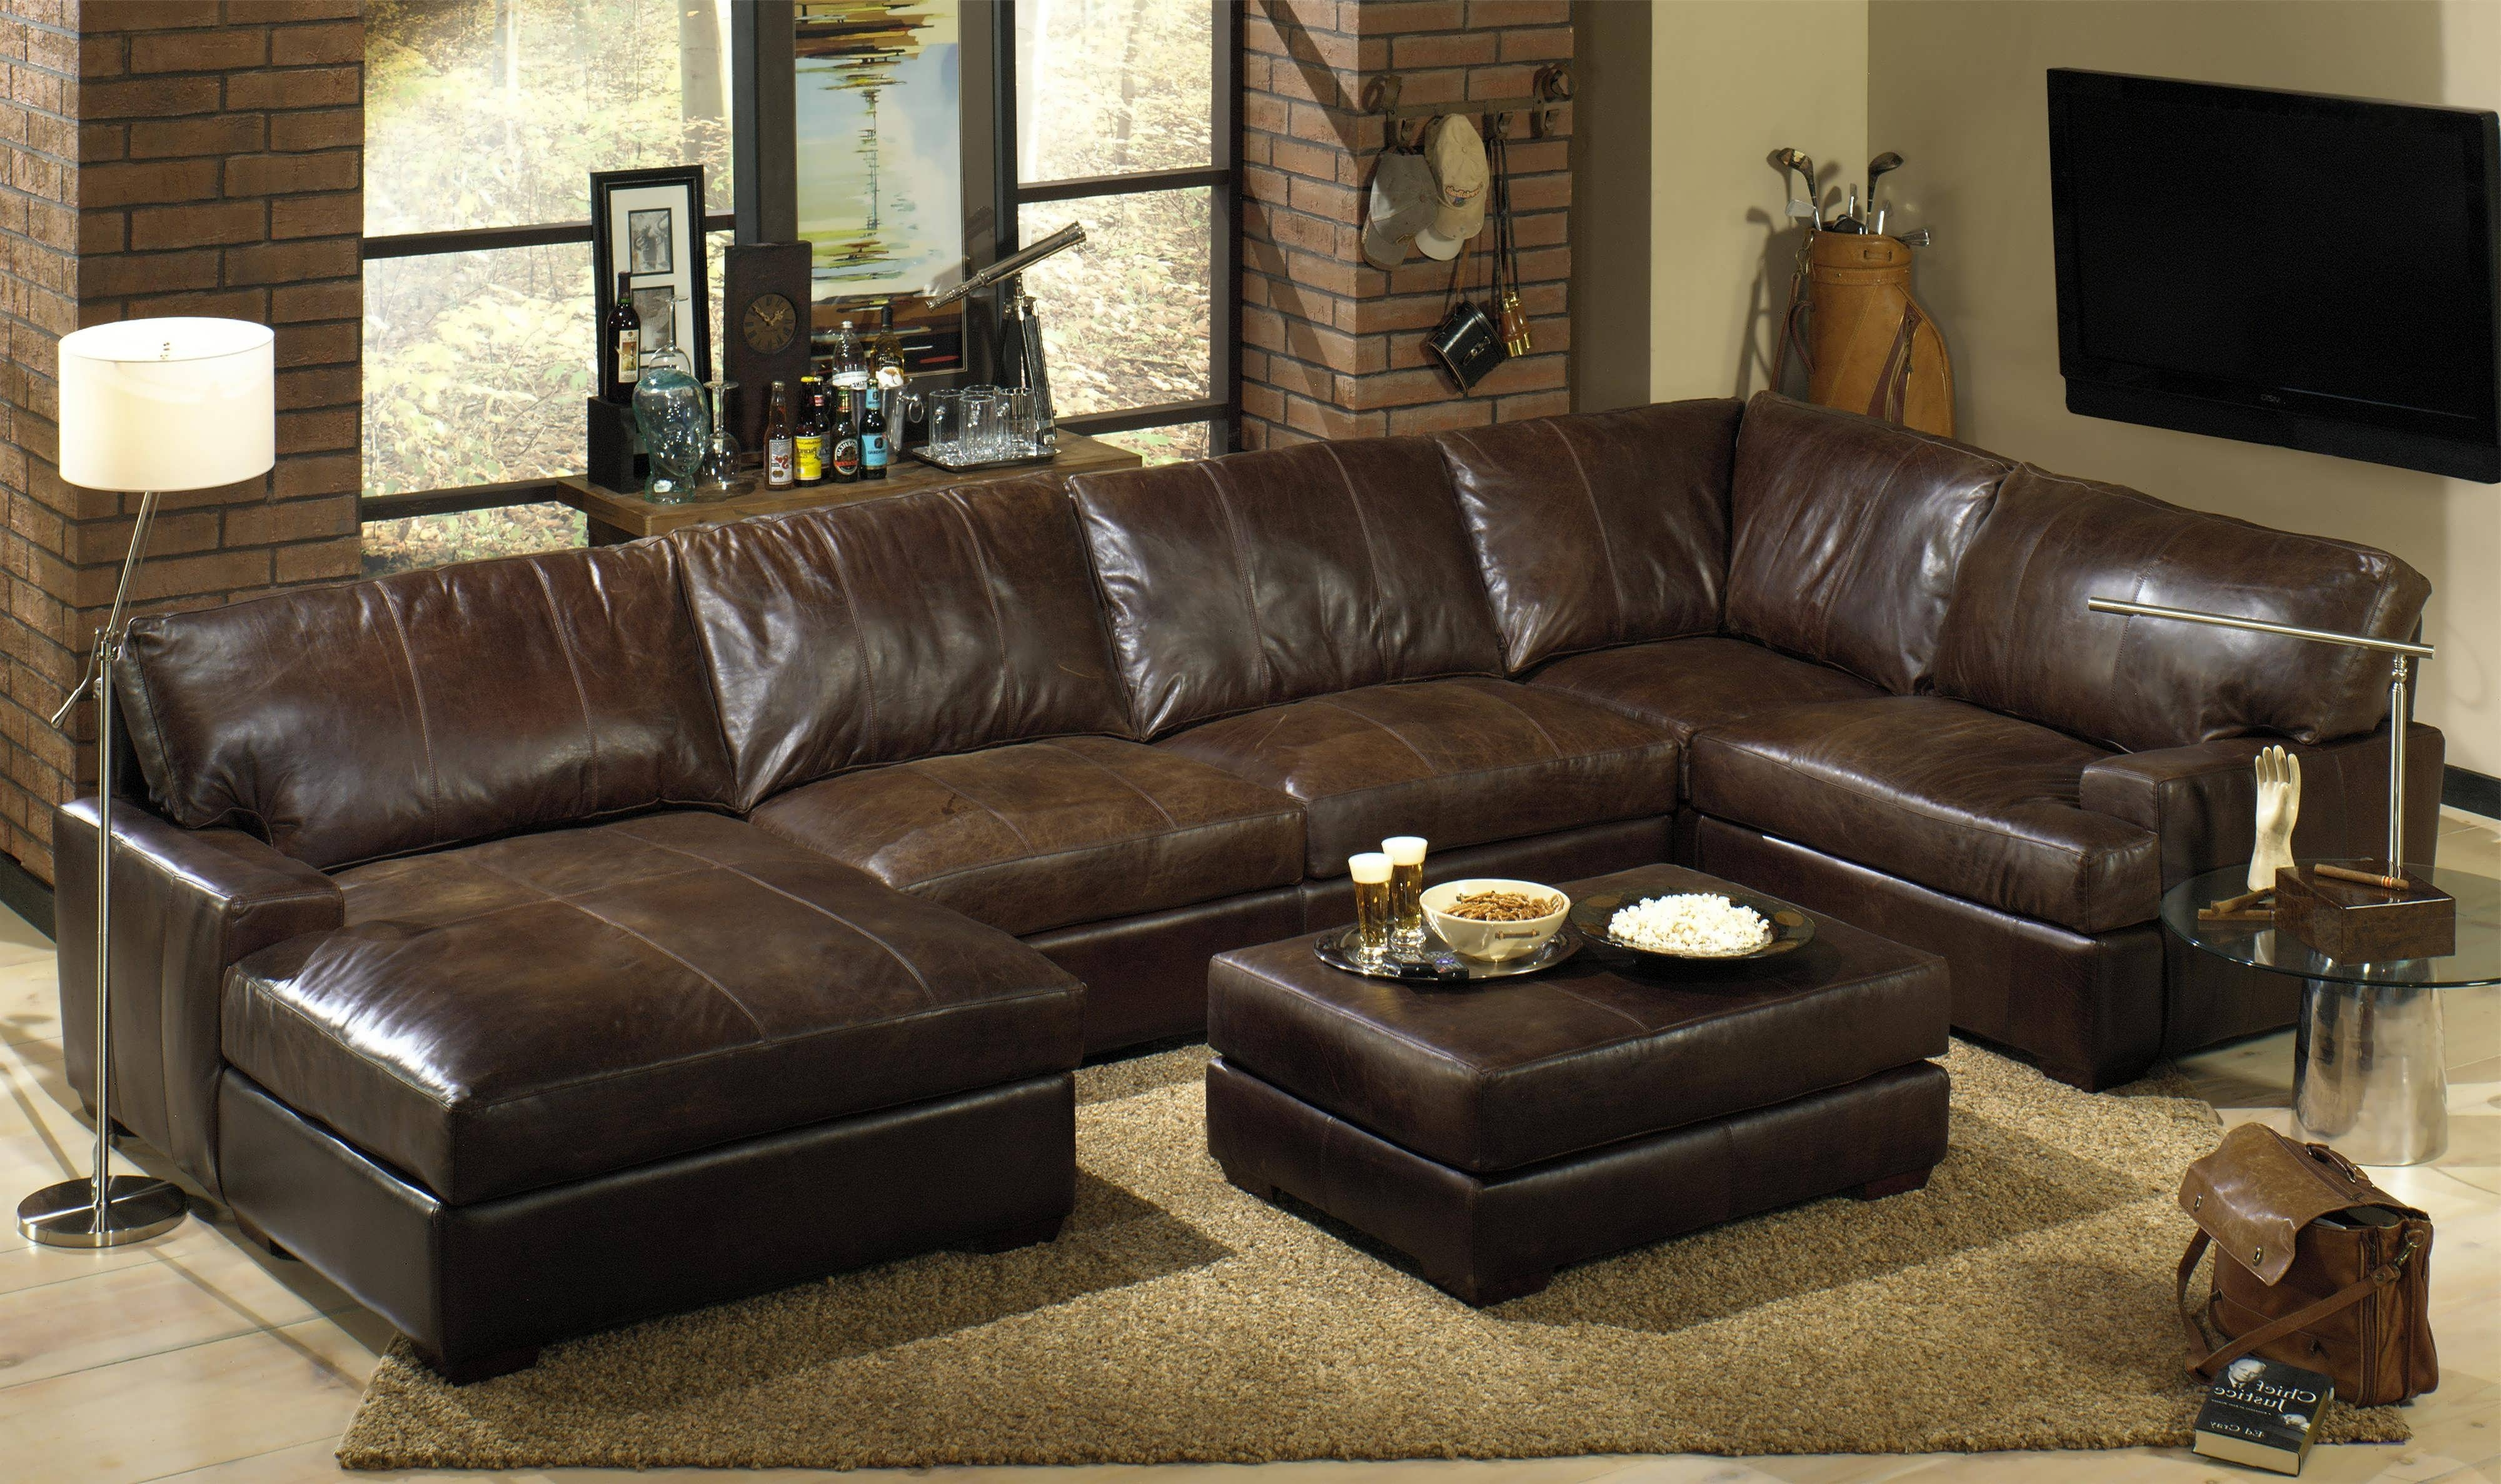 Famous Sofa : Small Chaise Sofa Small Leather Sectional Cheap Sectional Throughout Leather Sectional Sofas With Chaise (View 4 of 15)